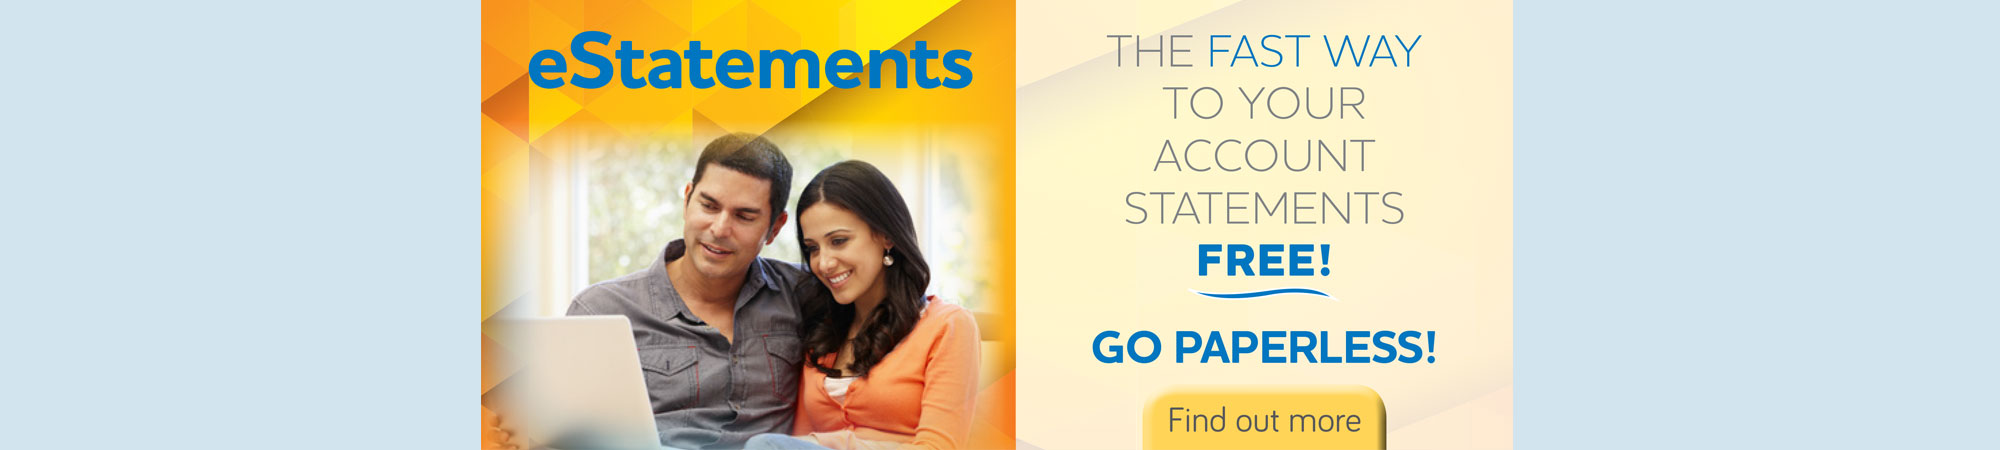 eStatements, the fast way to your account statements, free.